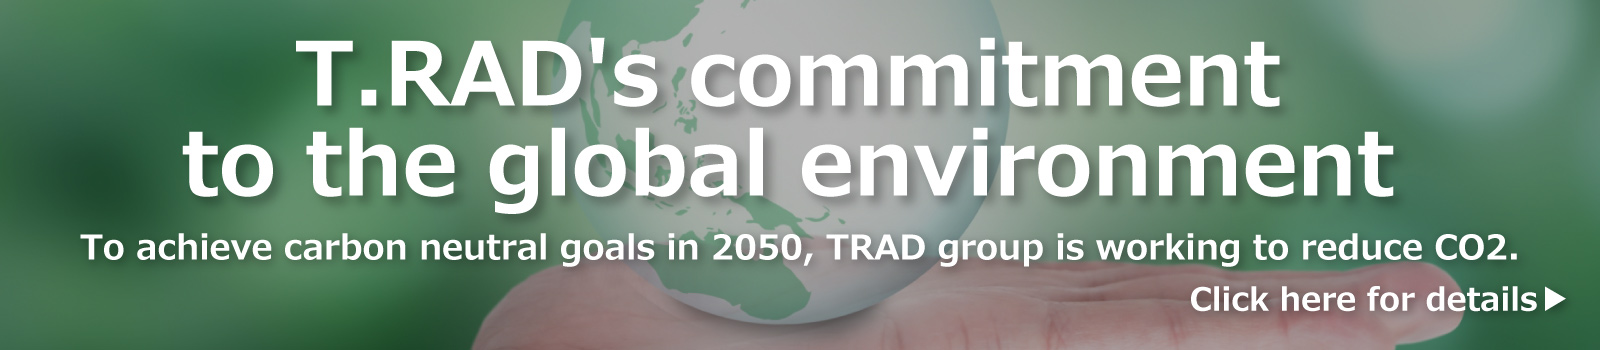 T.RAD's commitment to the global environment